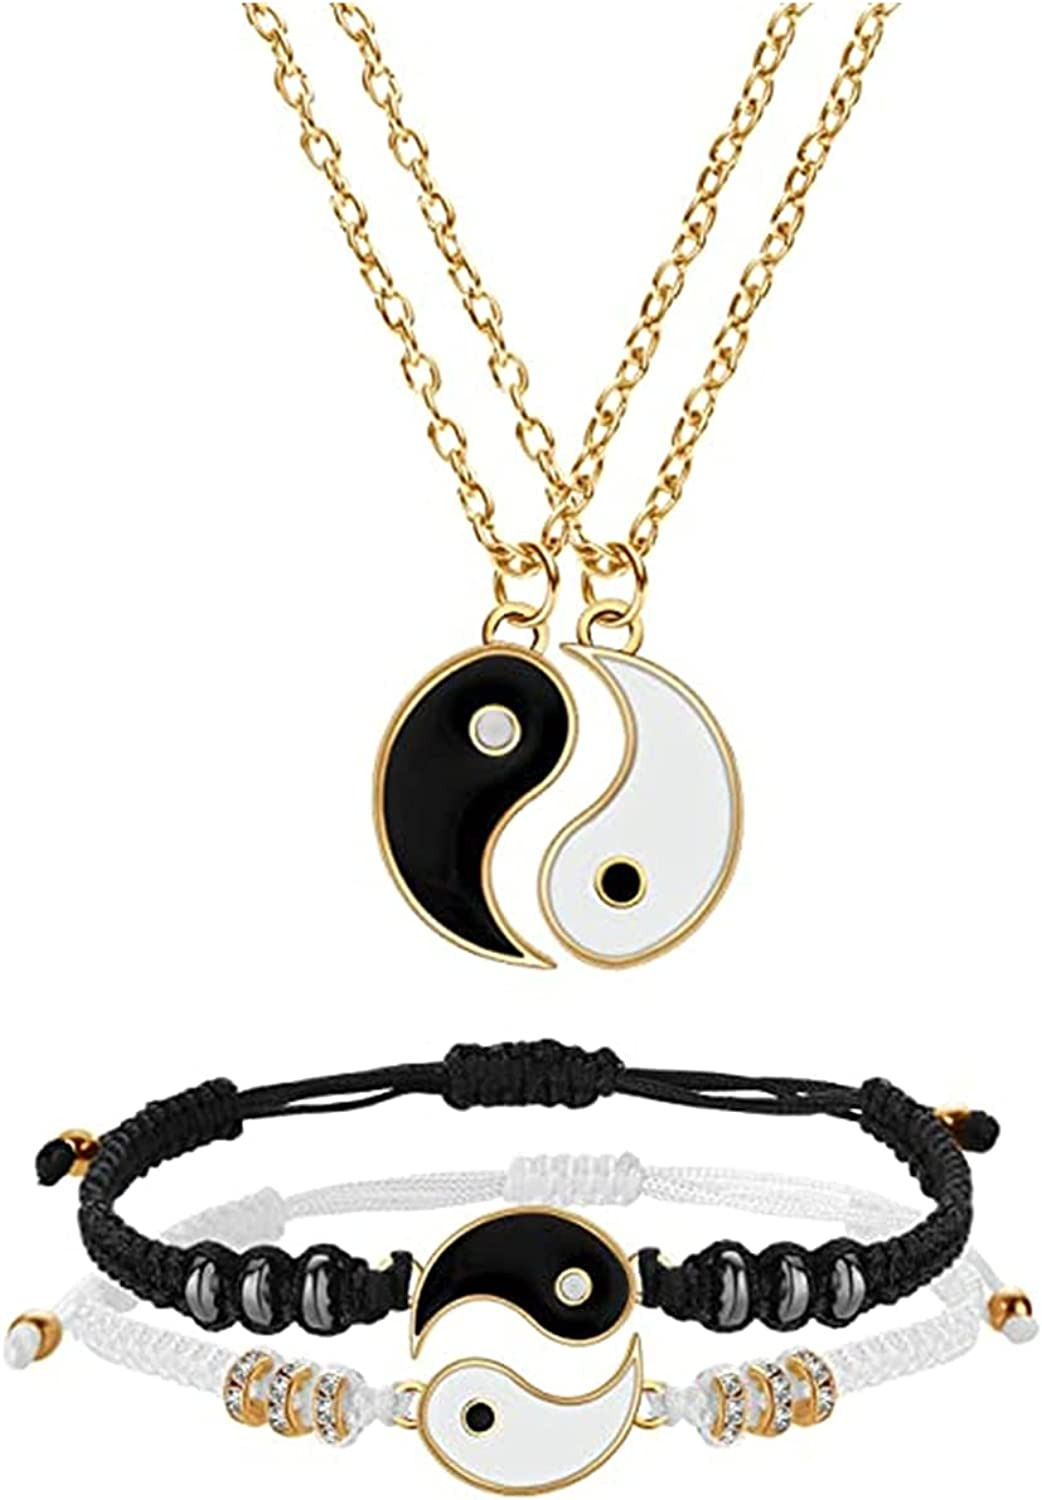 3~4 Pcs Yin Max 51% Max 85% OFF OFF Yang Chain Matching Bracelets Set Earrings Necklaces